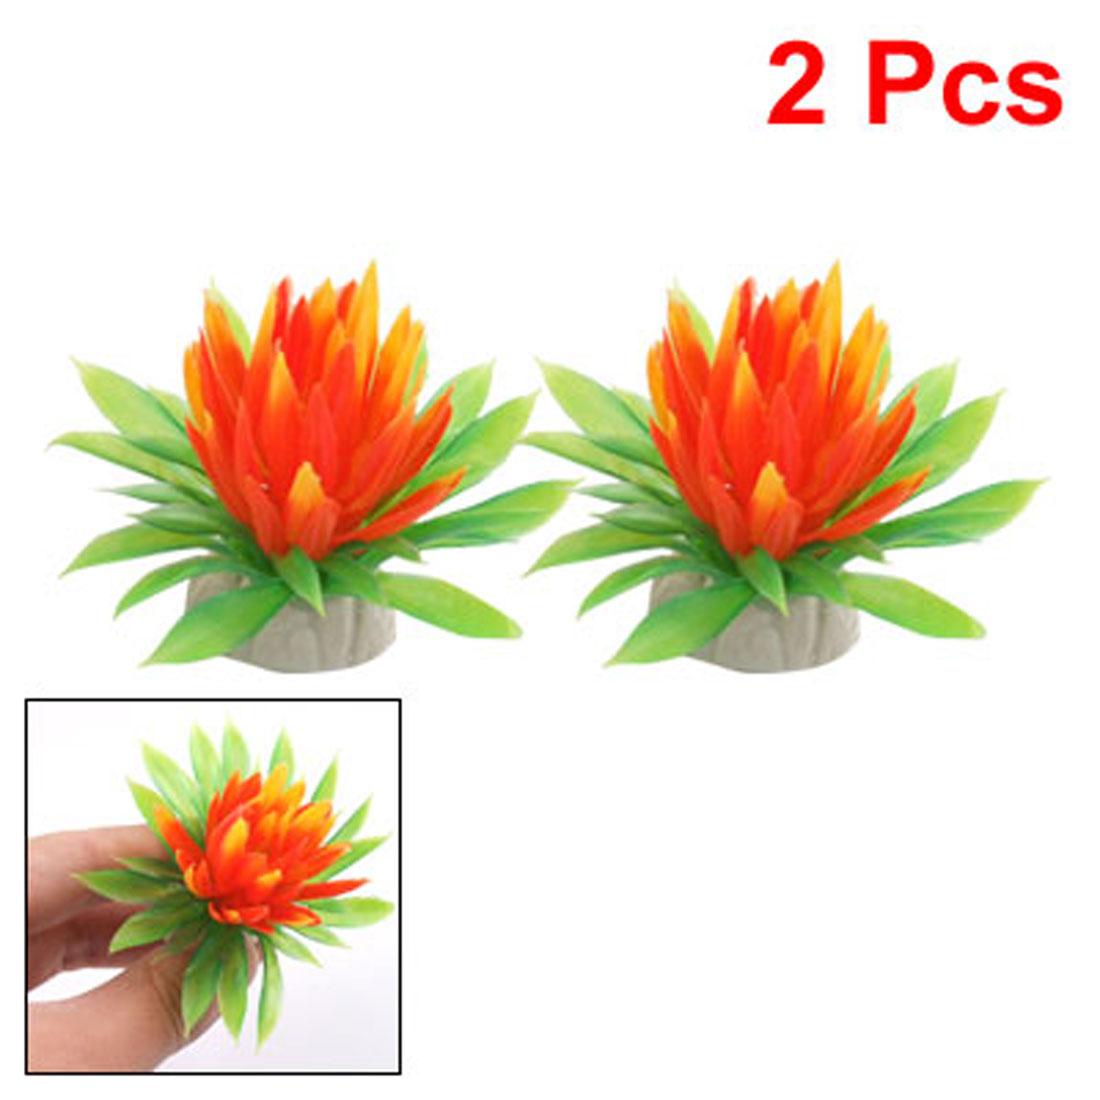 2 Pcs Plastic Green Leaf Orange Red Lotus Flower Decor for Aquarium Plant